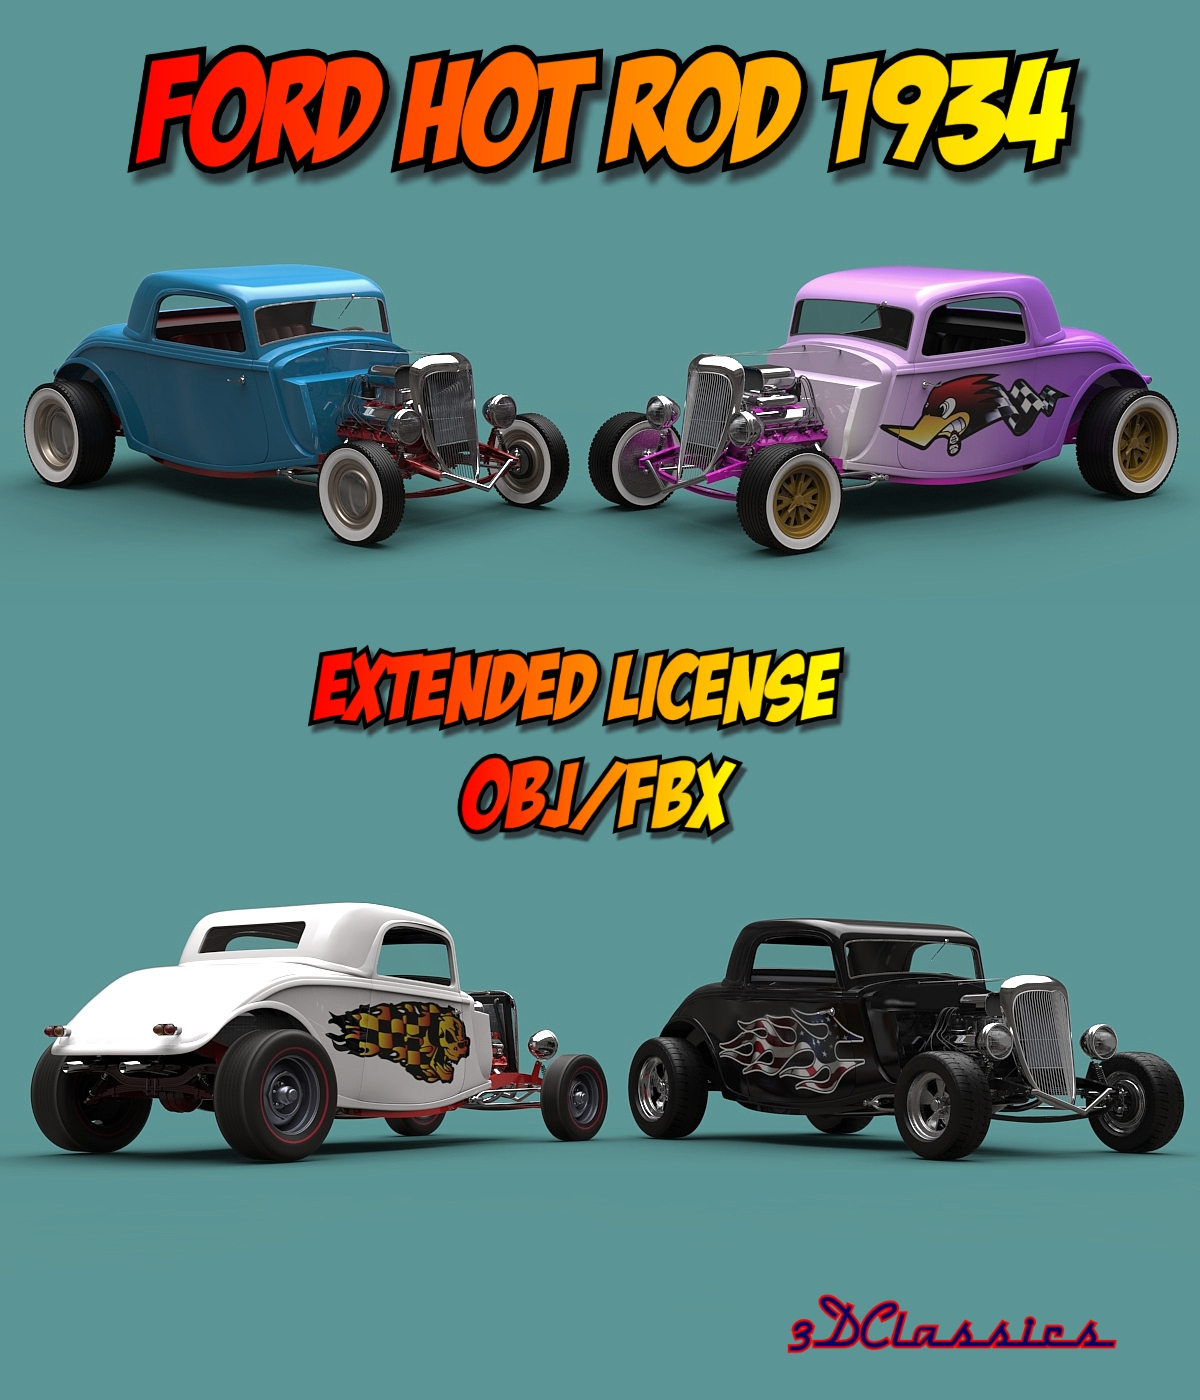 FORD HOT ROD 1934 OBJ FBX EXTENDED LICENSE by 3DClassics